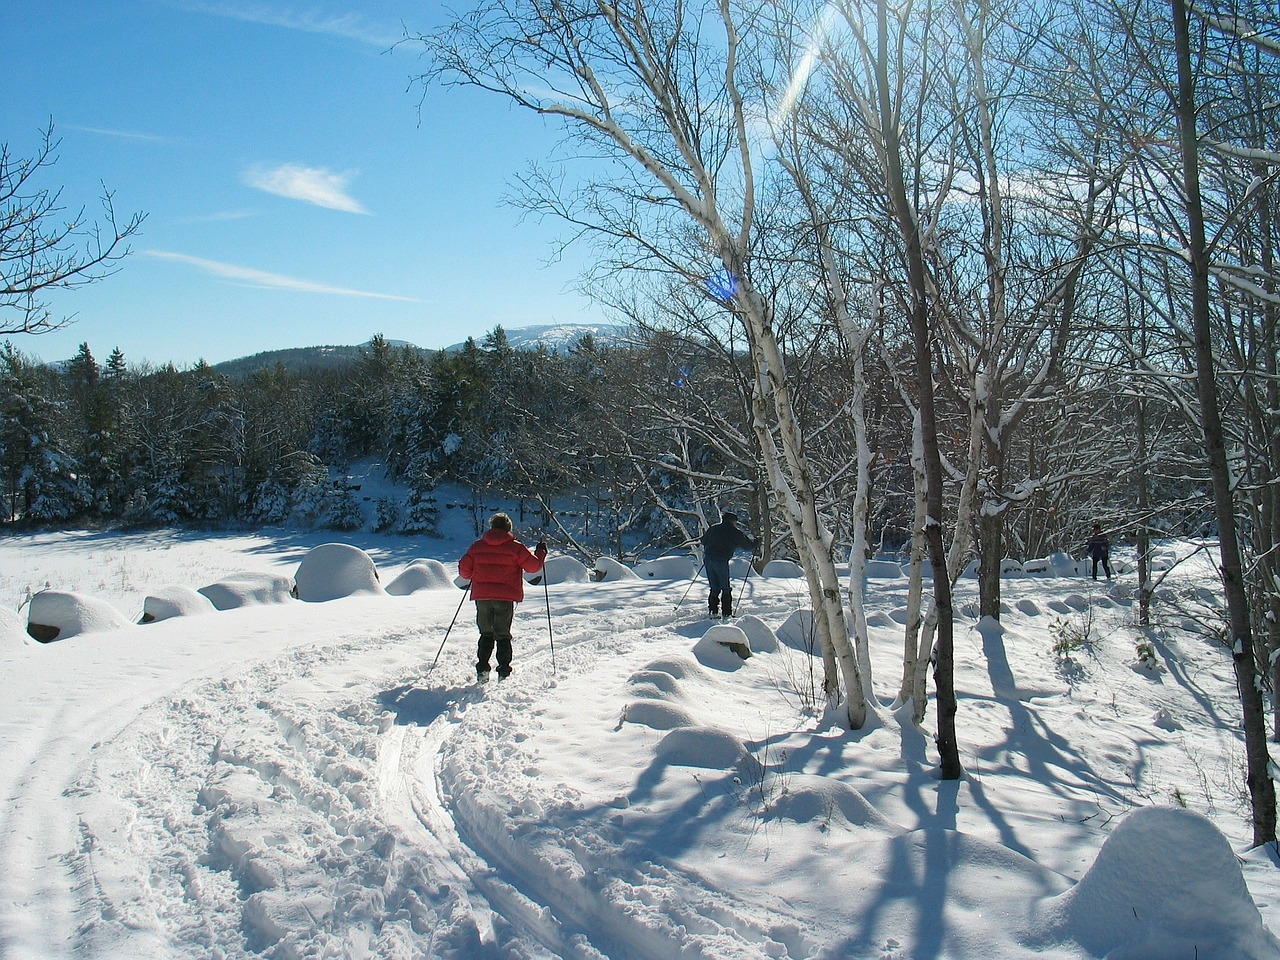 Cross country skiing and snow shoeing are popular sports along the carriage roads in winter